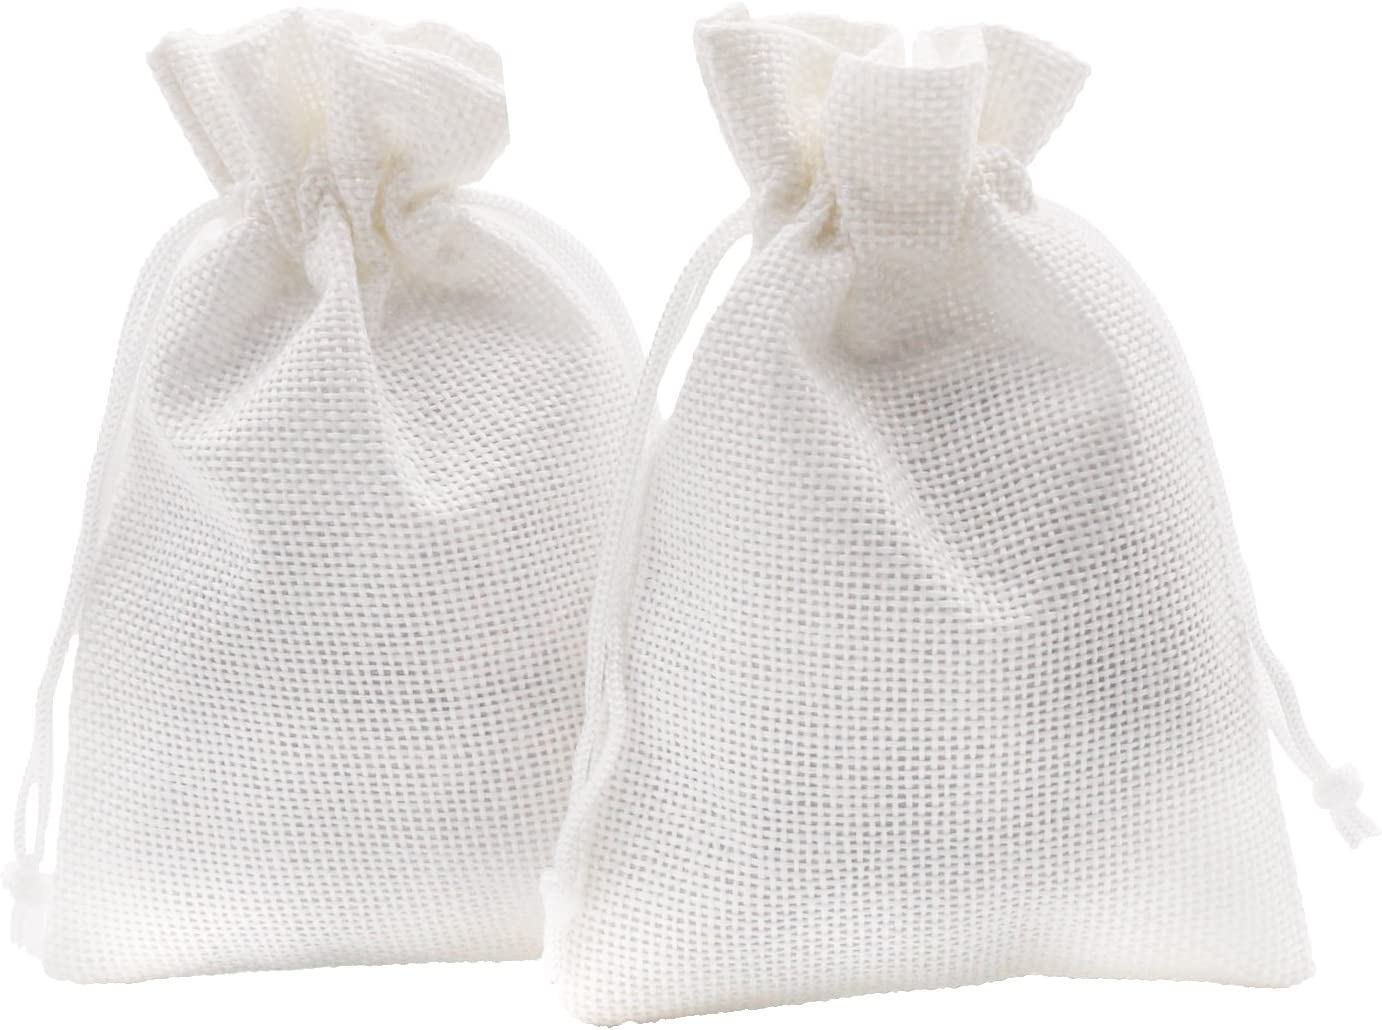 SumDirect Linen Gift Sachets Favors Pouches Party Wedding Jewelry Craft Sacks White Burlap Bags with Nylon Drawstring, 3.7x5.5 Inches,Pack of 20